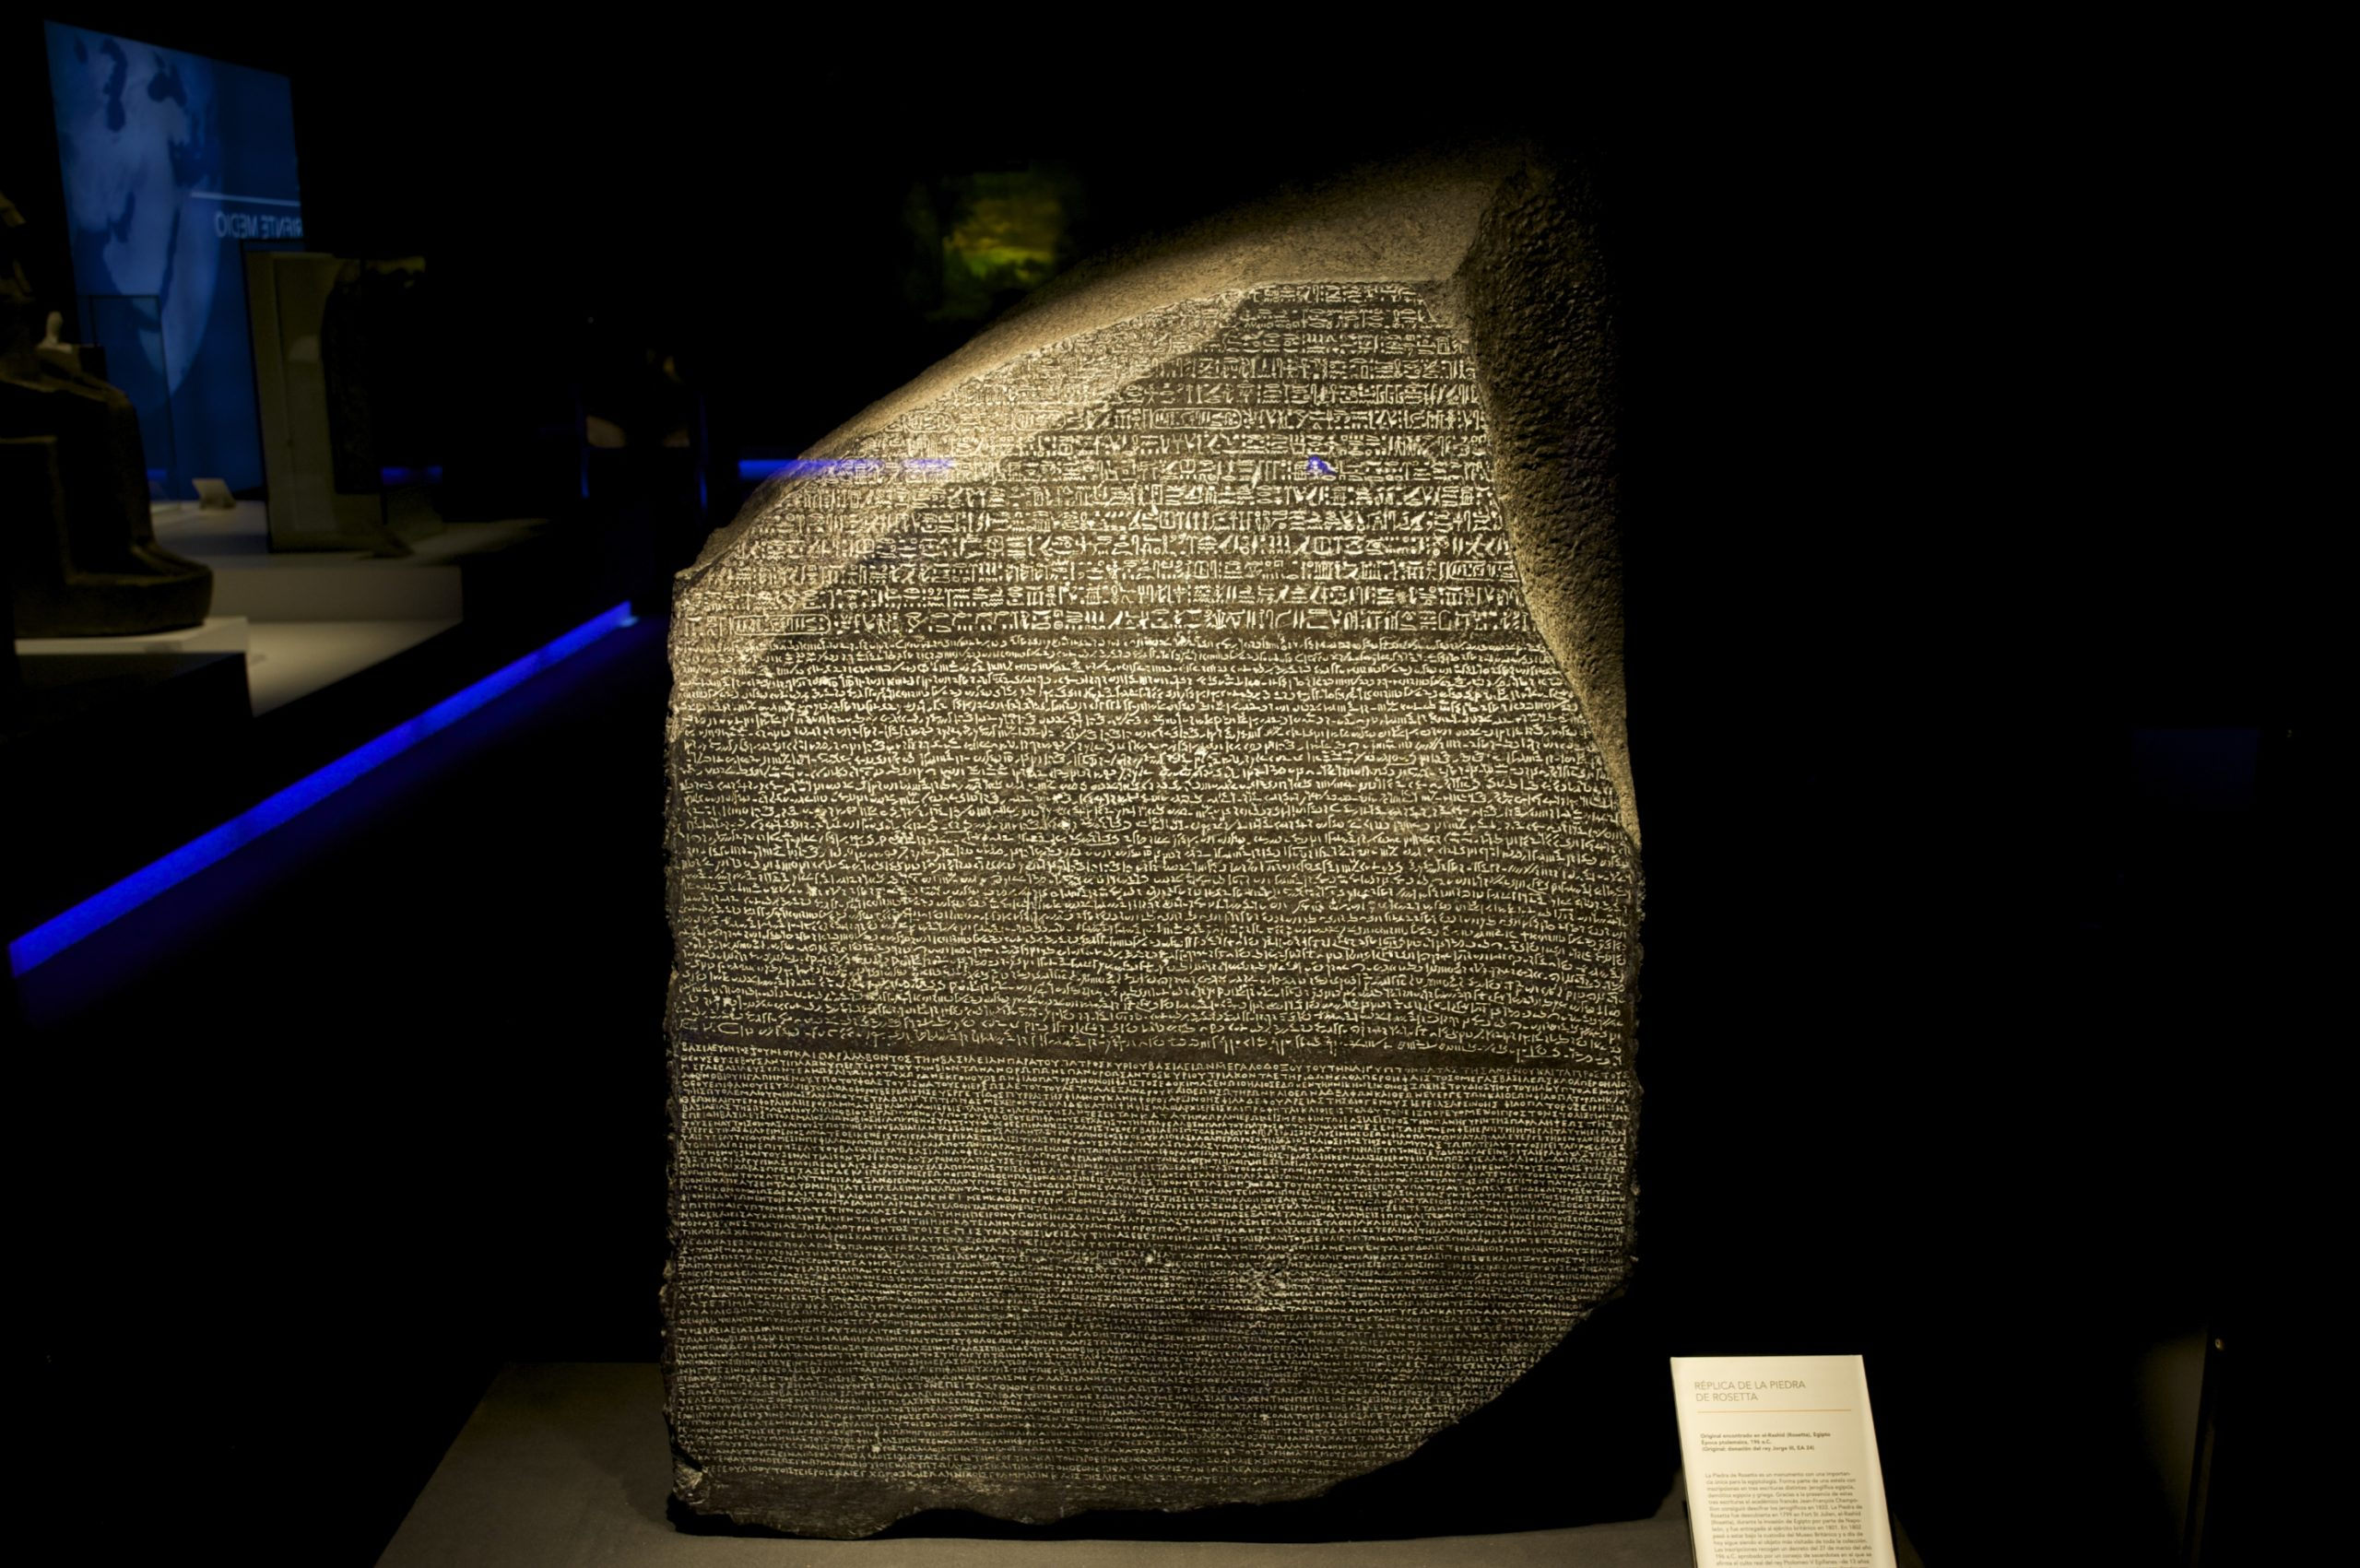 The Rosetta Stone is on display in the British Museum in London.